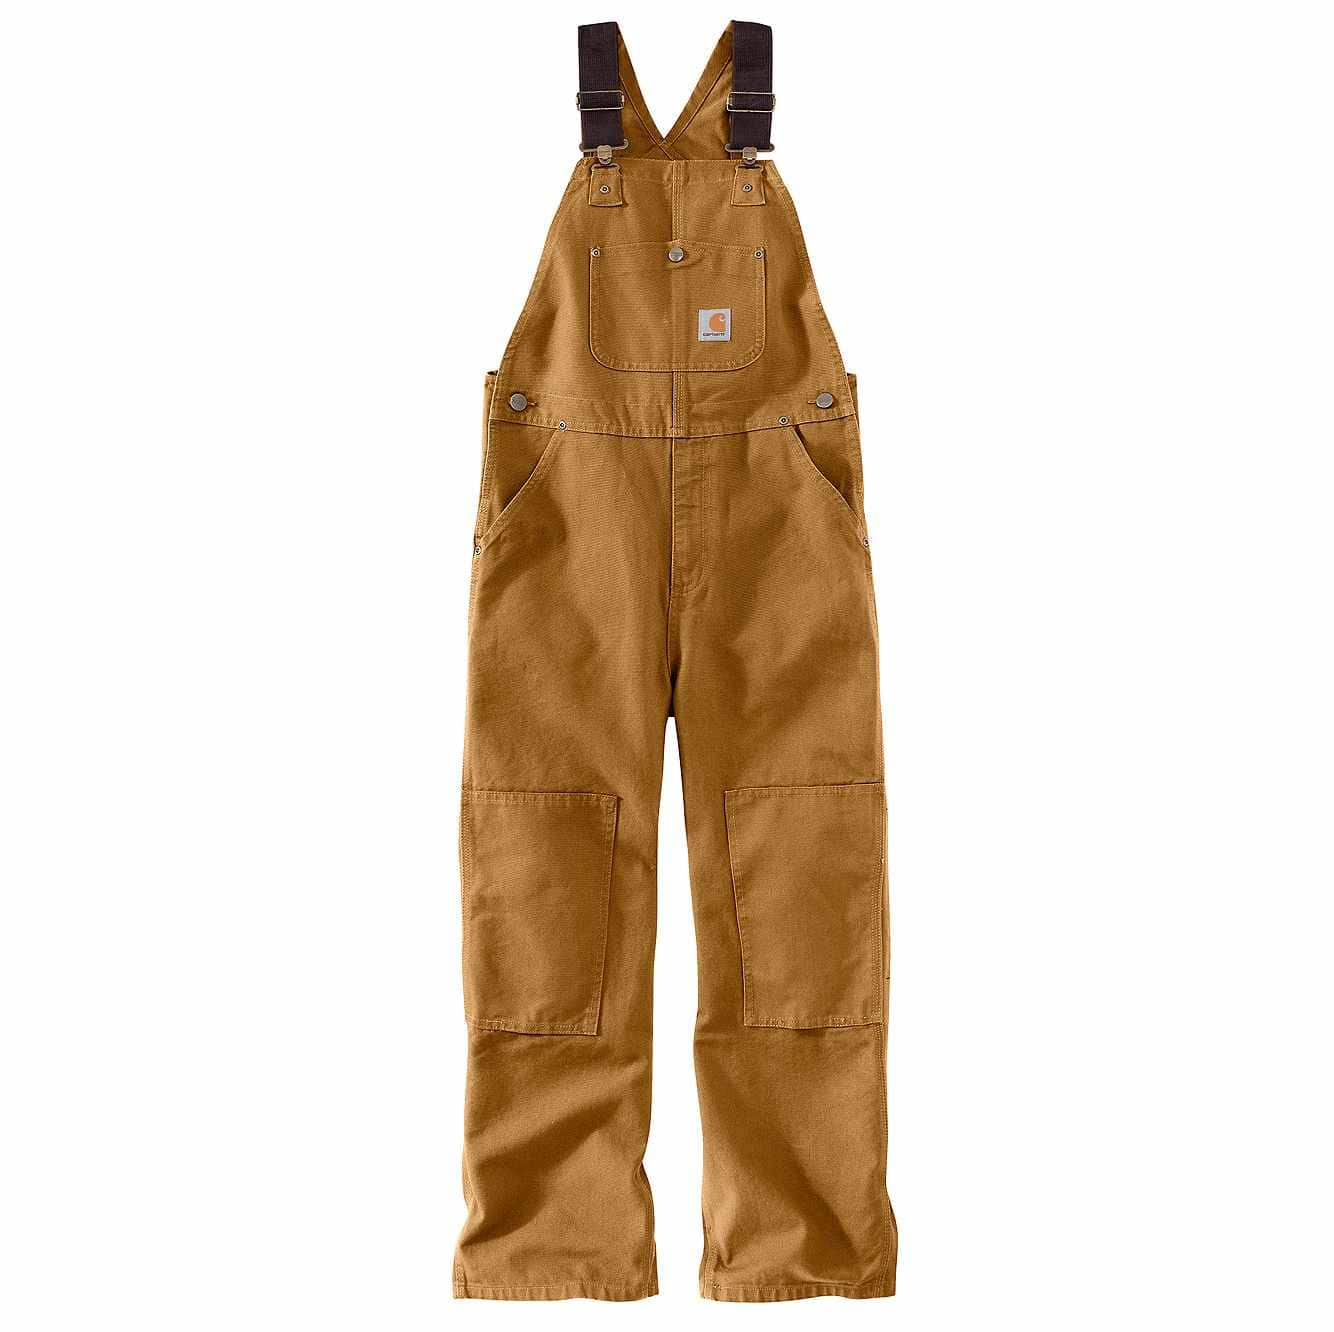 Picture of Duck Washed Bib Overall Sizes 8-16 in Carhartt Brown